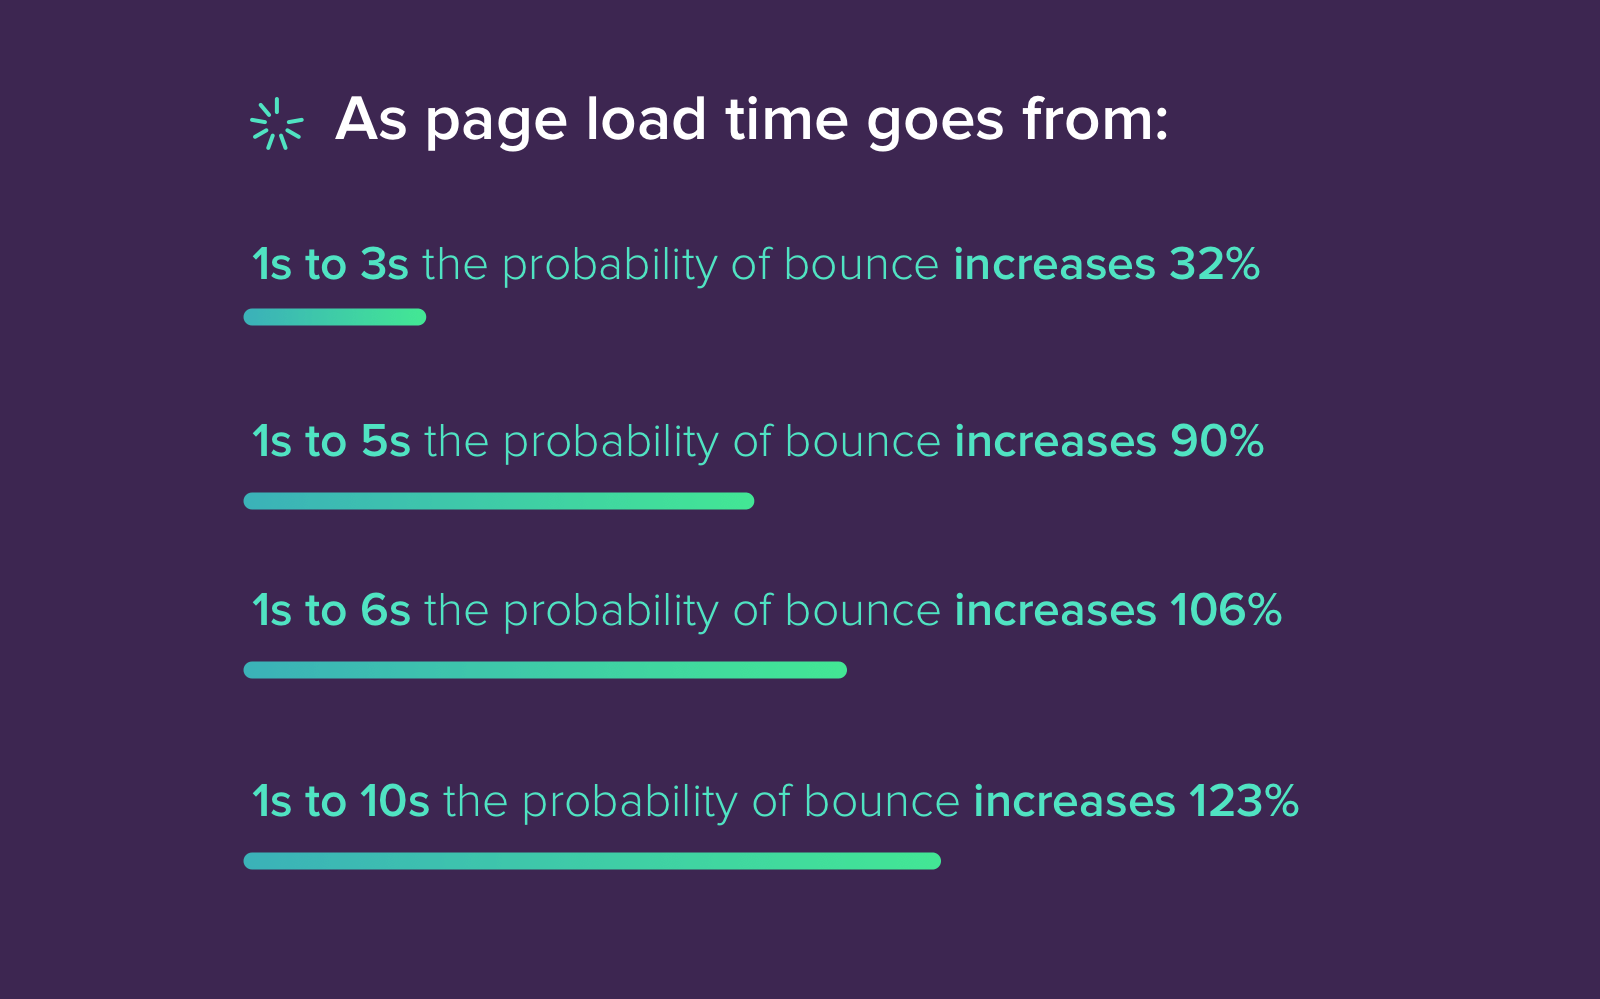 Statistics from Google on how website load speed optimization influences the bounce increases